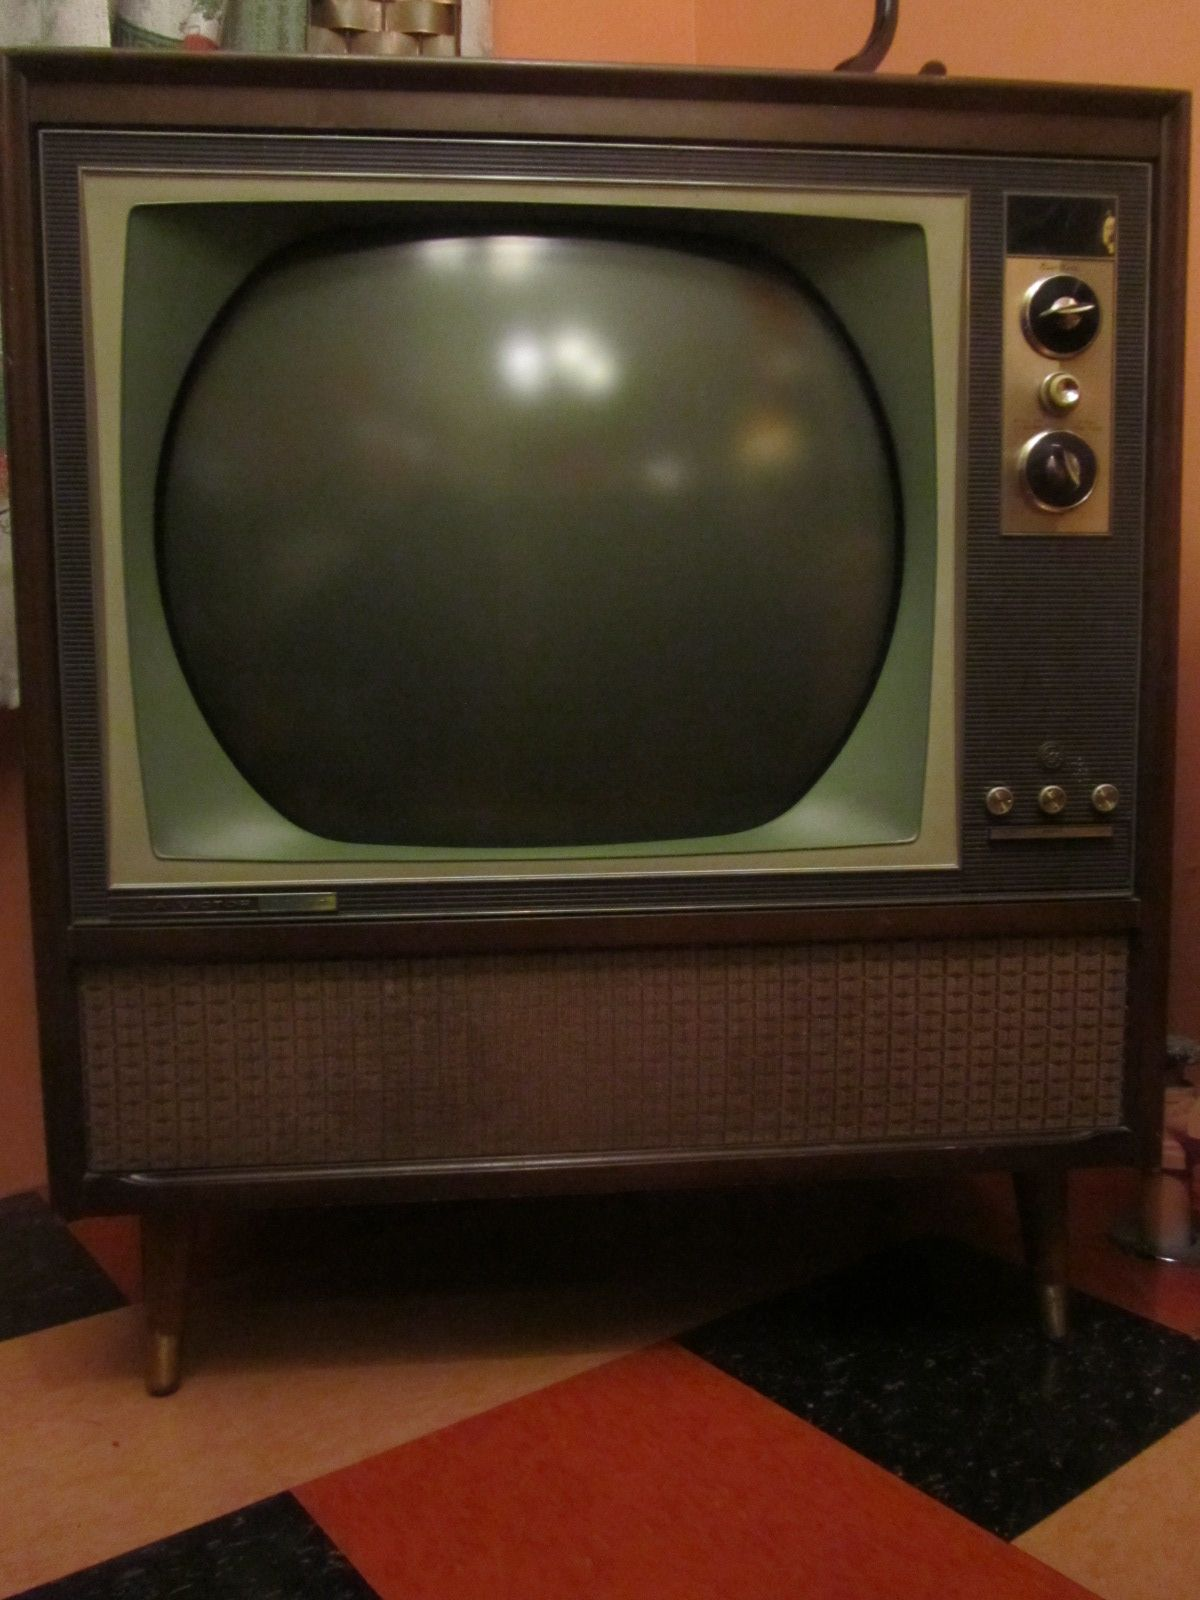 1963 Rca New Vista Color Tv The Wakefield 14 G 79 M Ctc 12 Vintage Television Vintage Tv Classic Tv